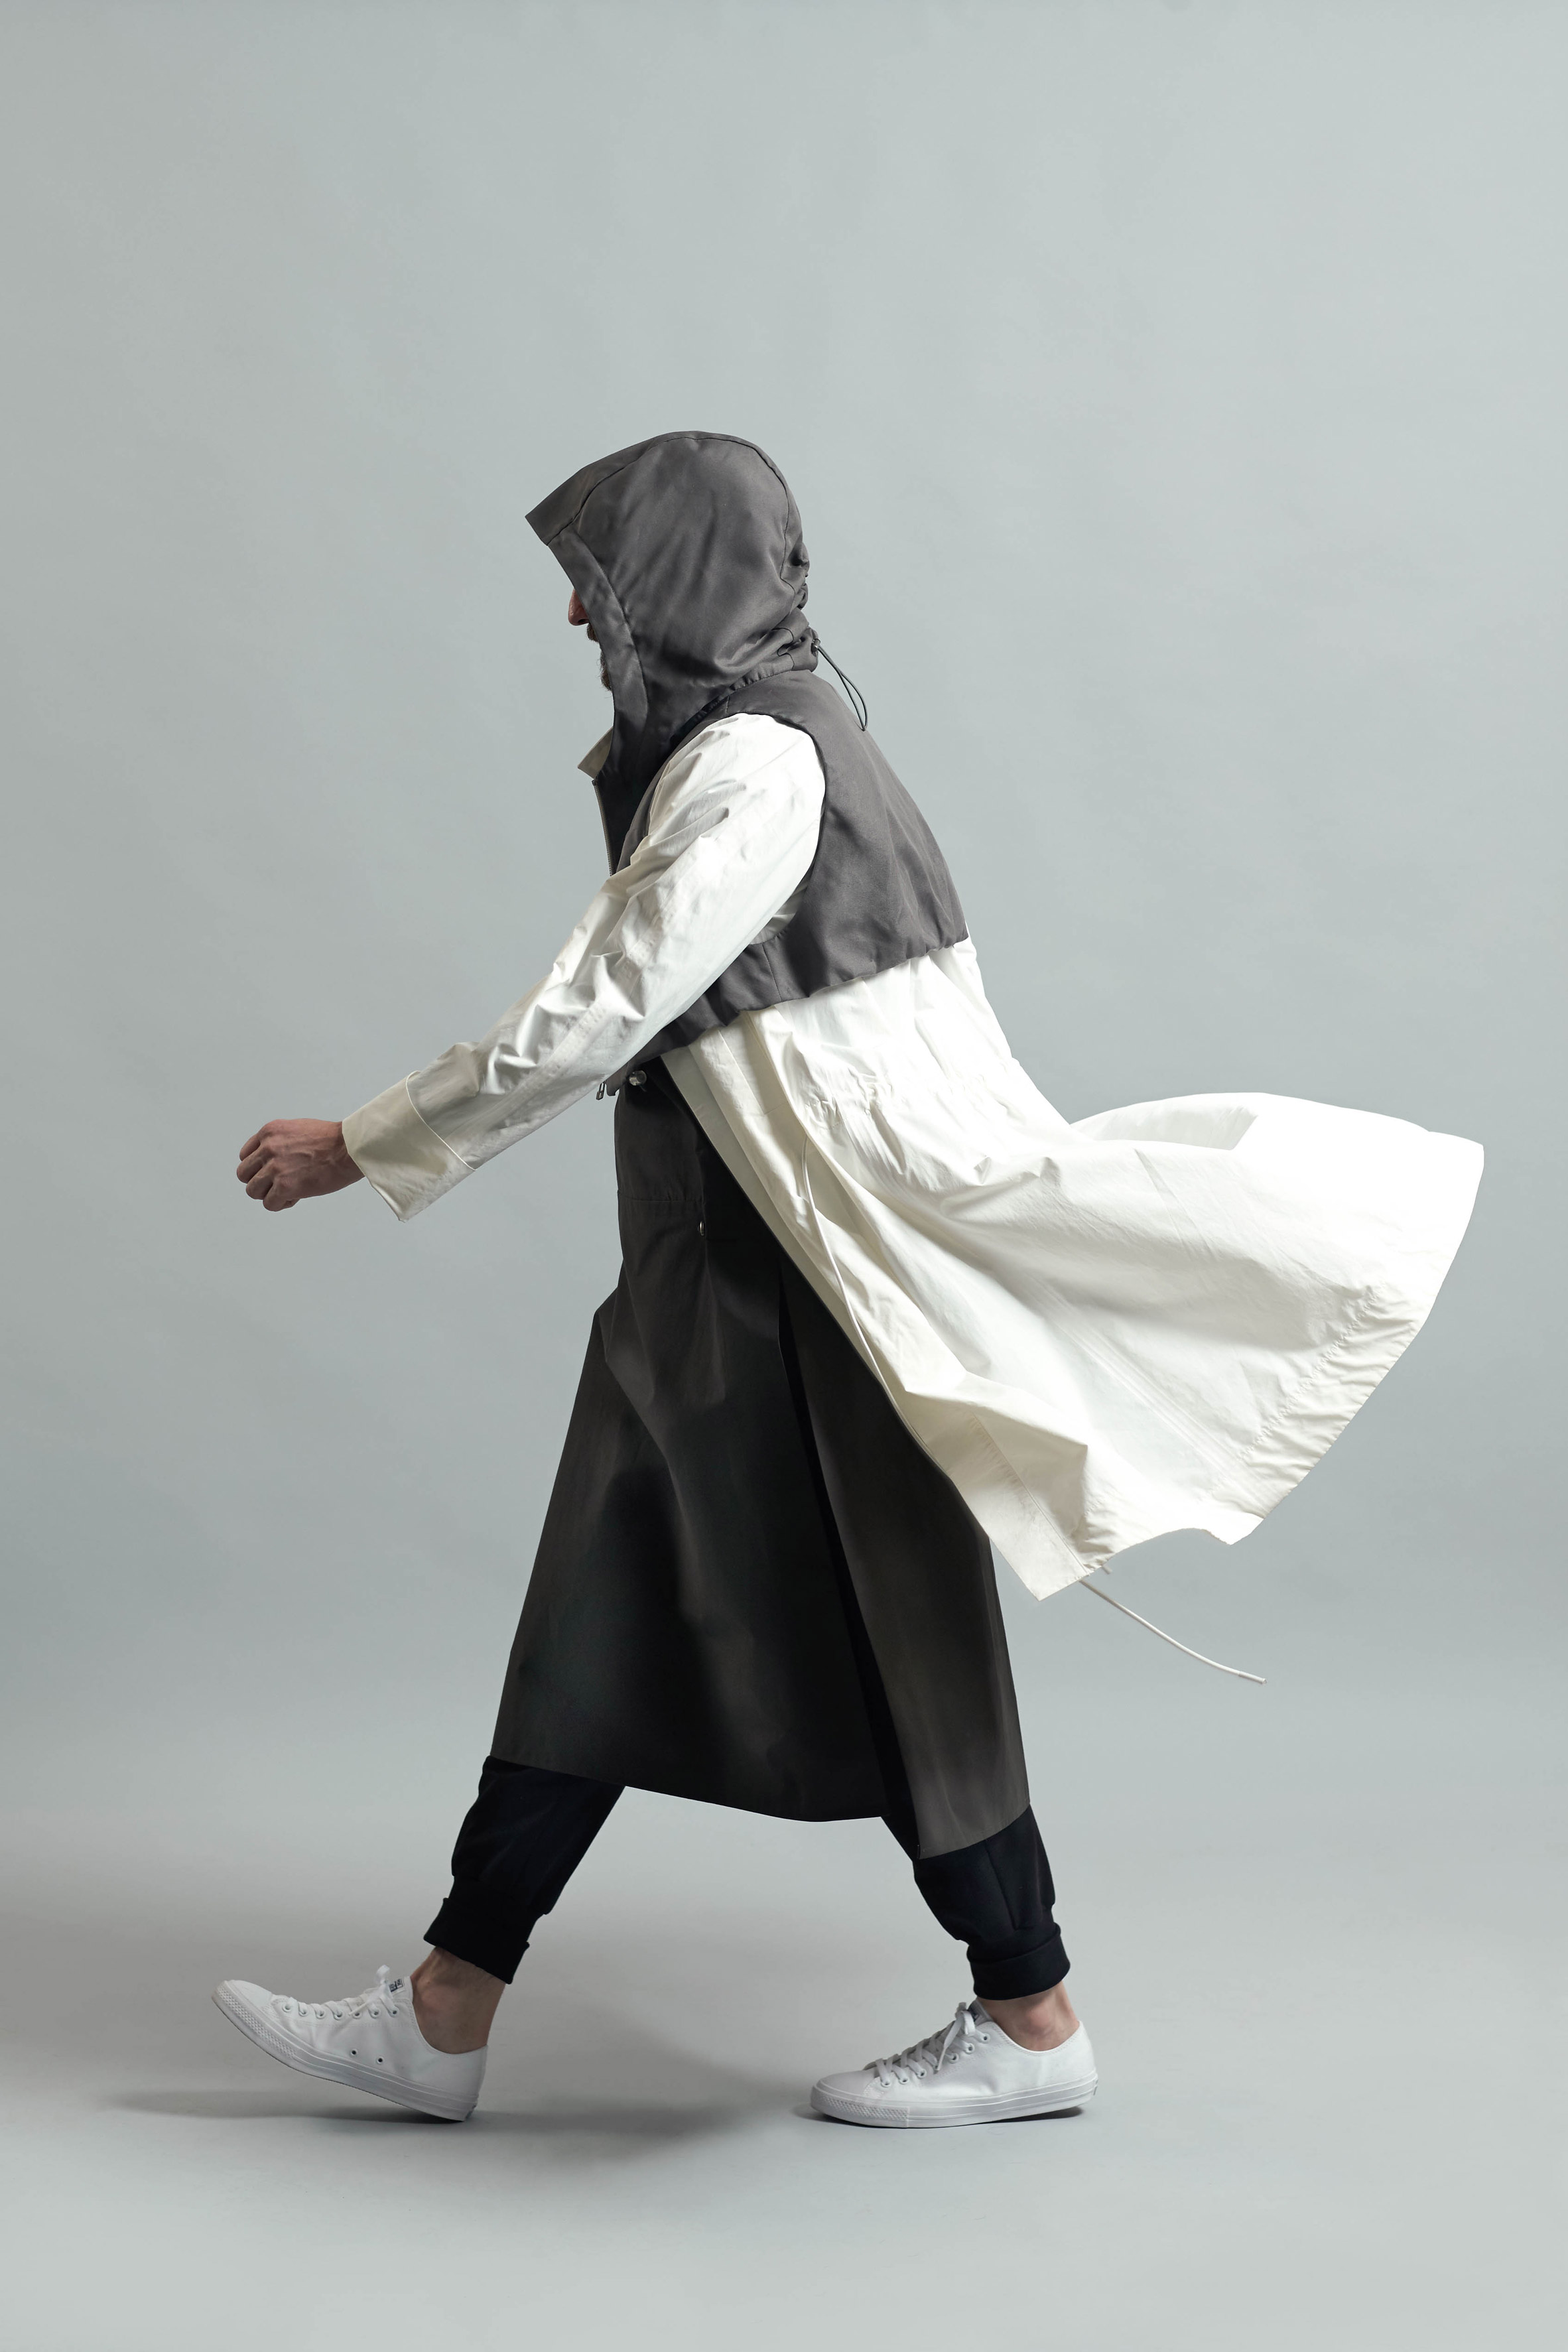 the-new-habit-clothes-inspired-dominican-monks-byborre-design-fashion_dezeen_2364_col_16-1